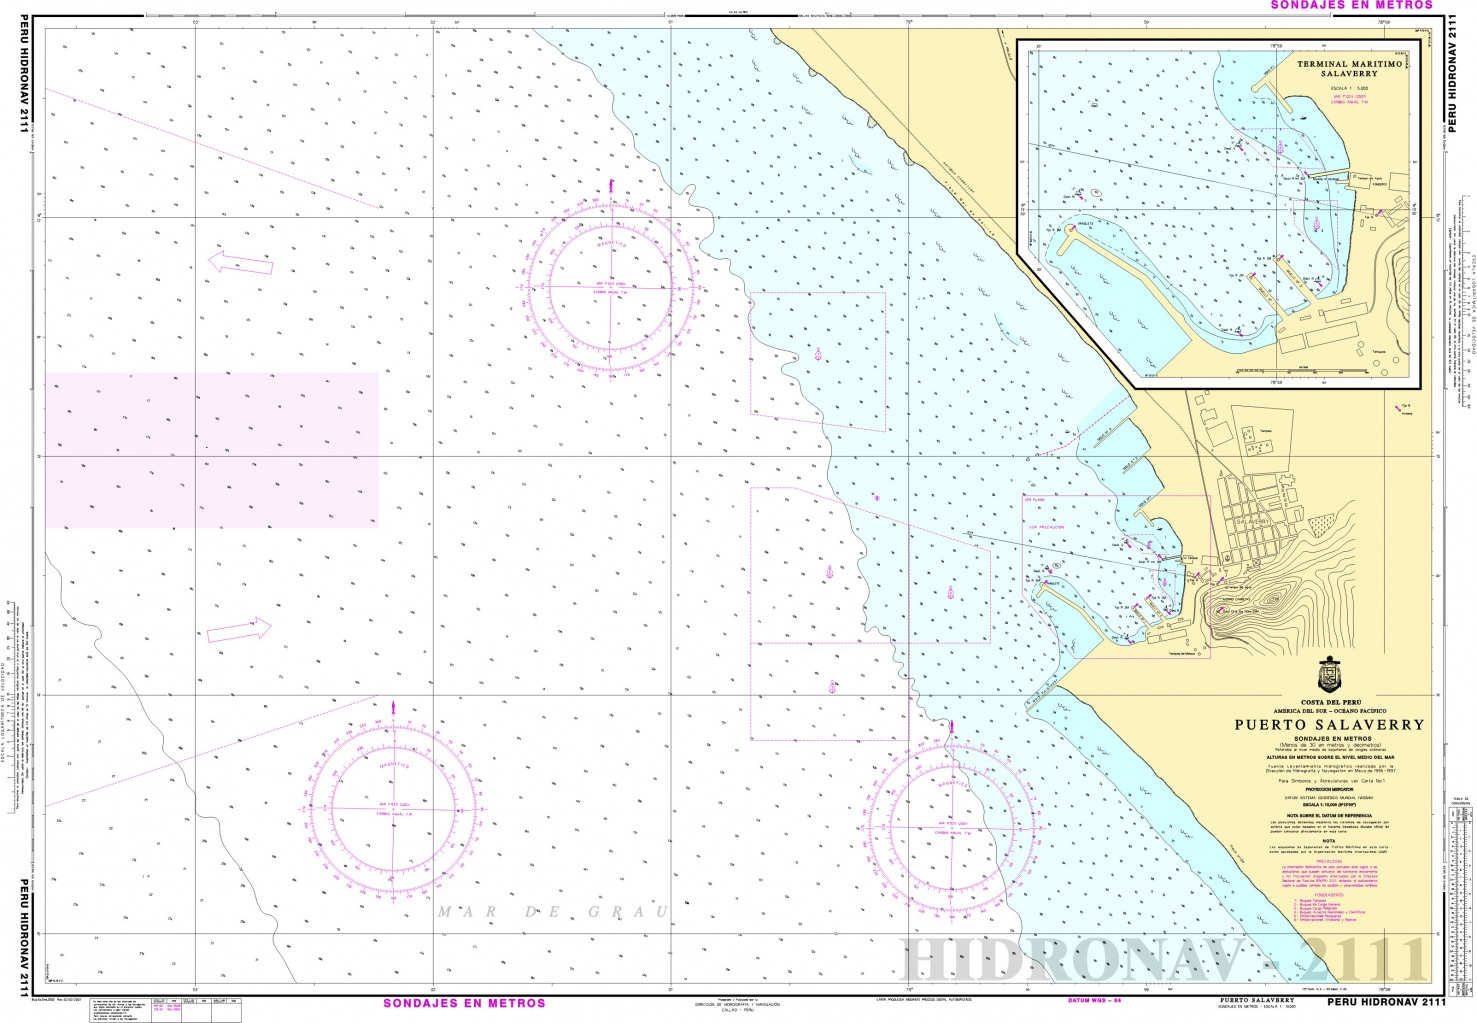 Click image for larger version  Name:2111_PUERTO SALAVERRY A.jpg Views:74 Size:438.5 KB ID:79147